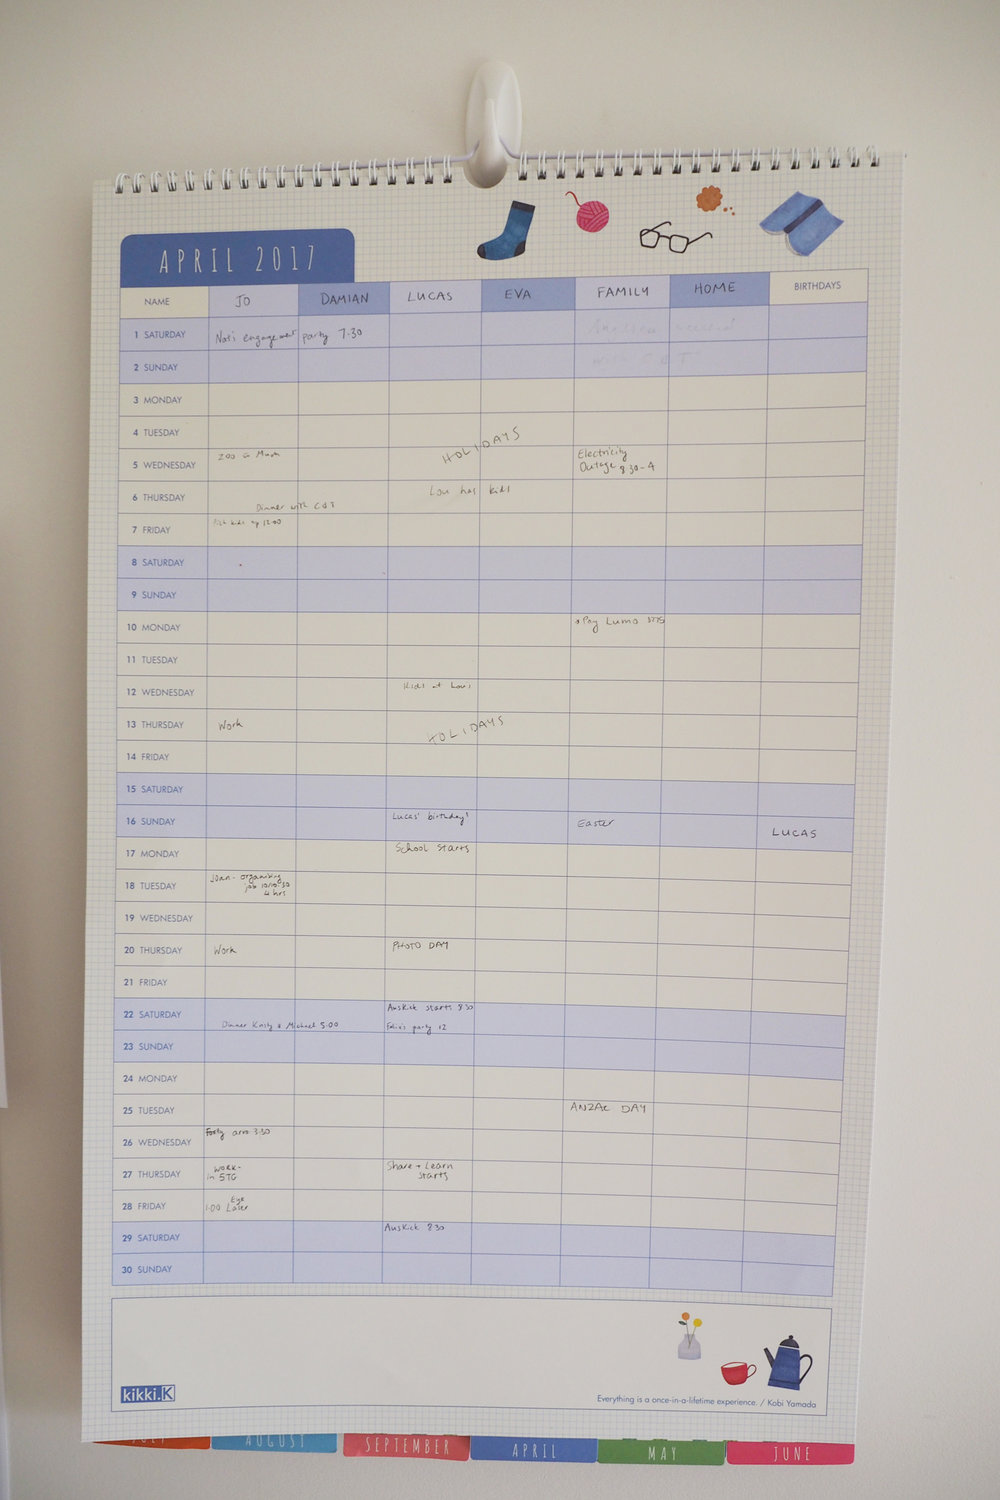 7 proven essentials for the best family command centre blog home use a family calendar to track everyones schedule and upcoming events and reminders the organised solutioingenieria Image collections